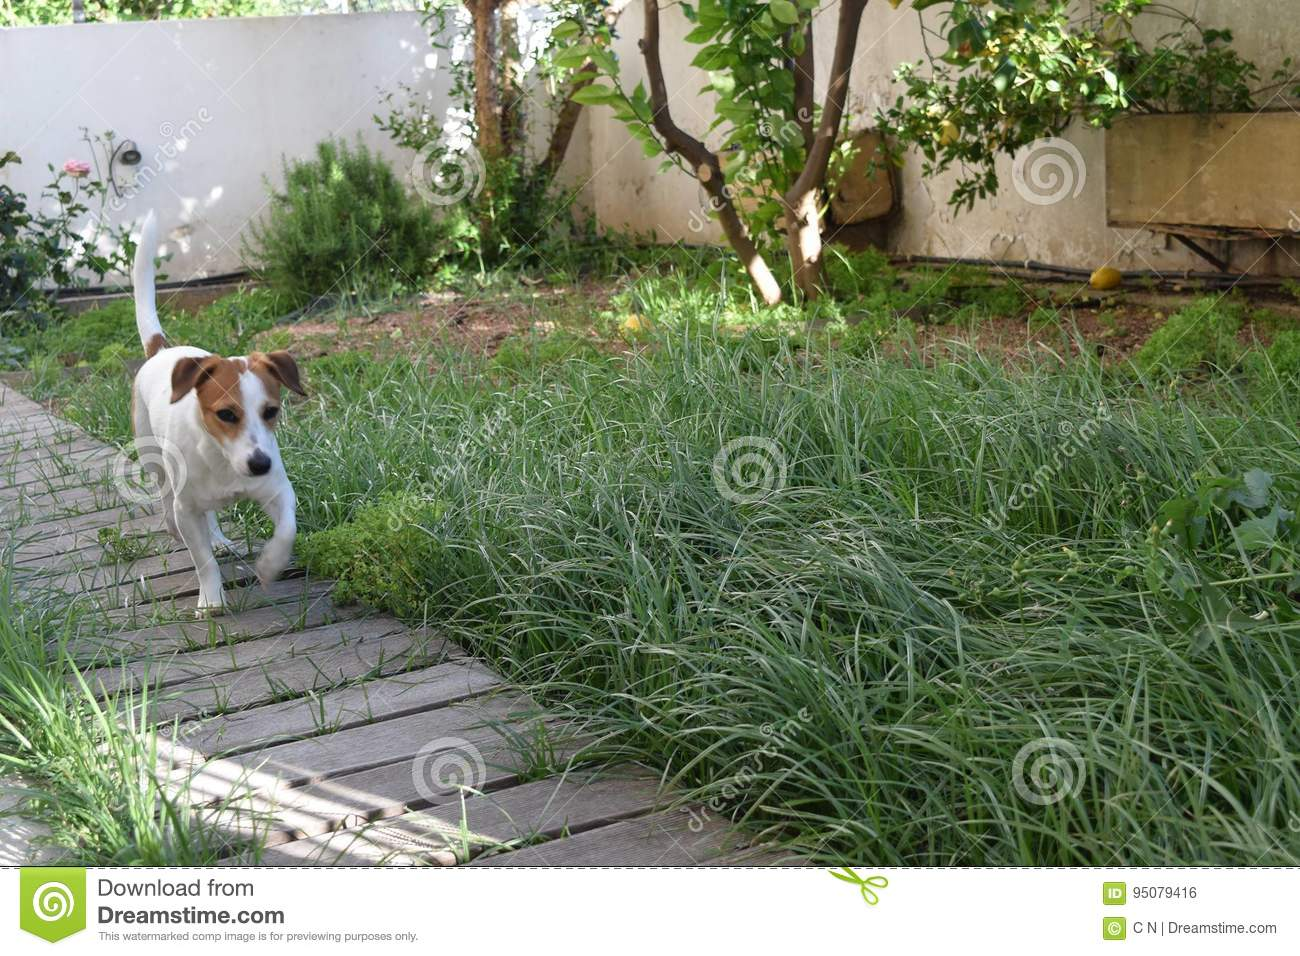 Jack Russell Terrier in the yard